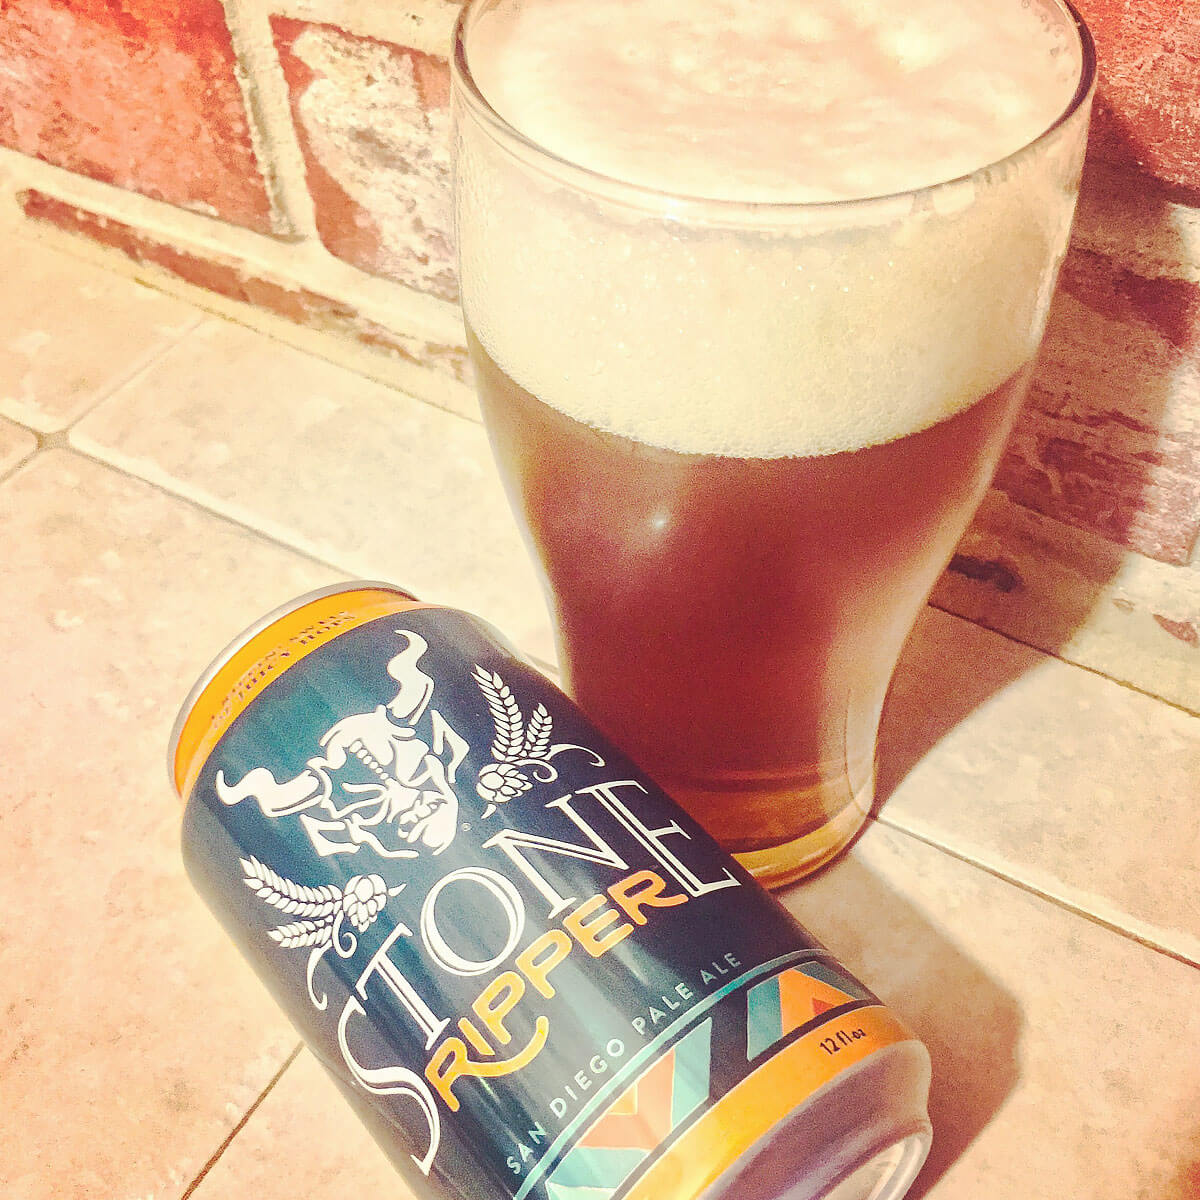 Stone Ripper, an American Pale Ale by Stone Brewing